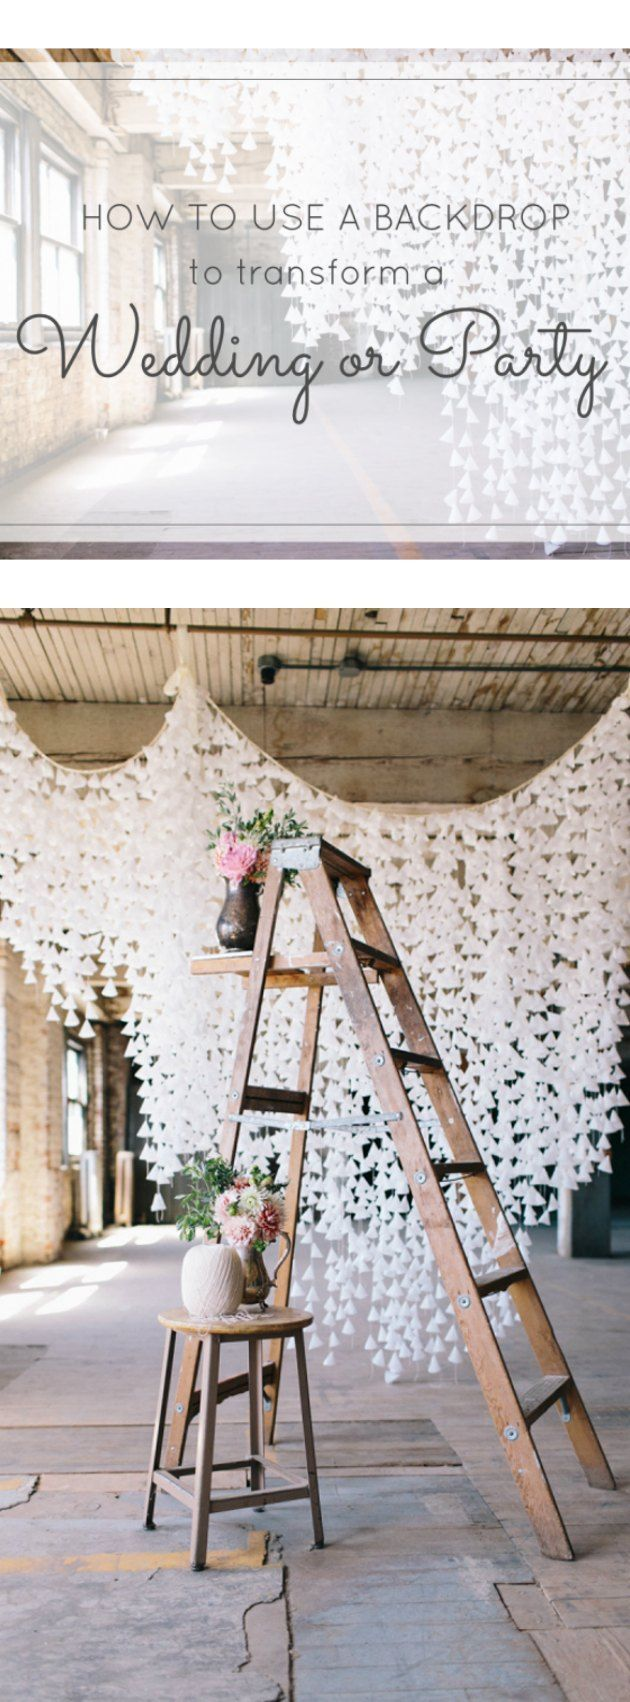 How a backdrop can transform a wedding or party plus a diy wax